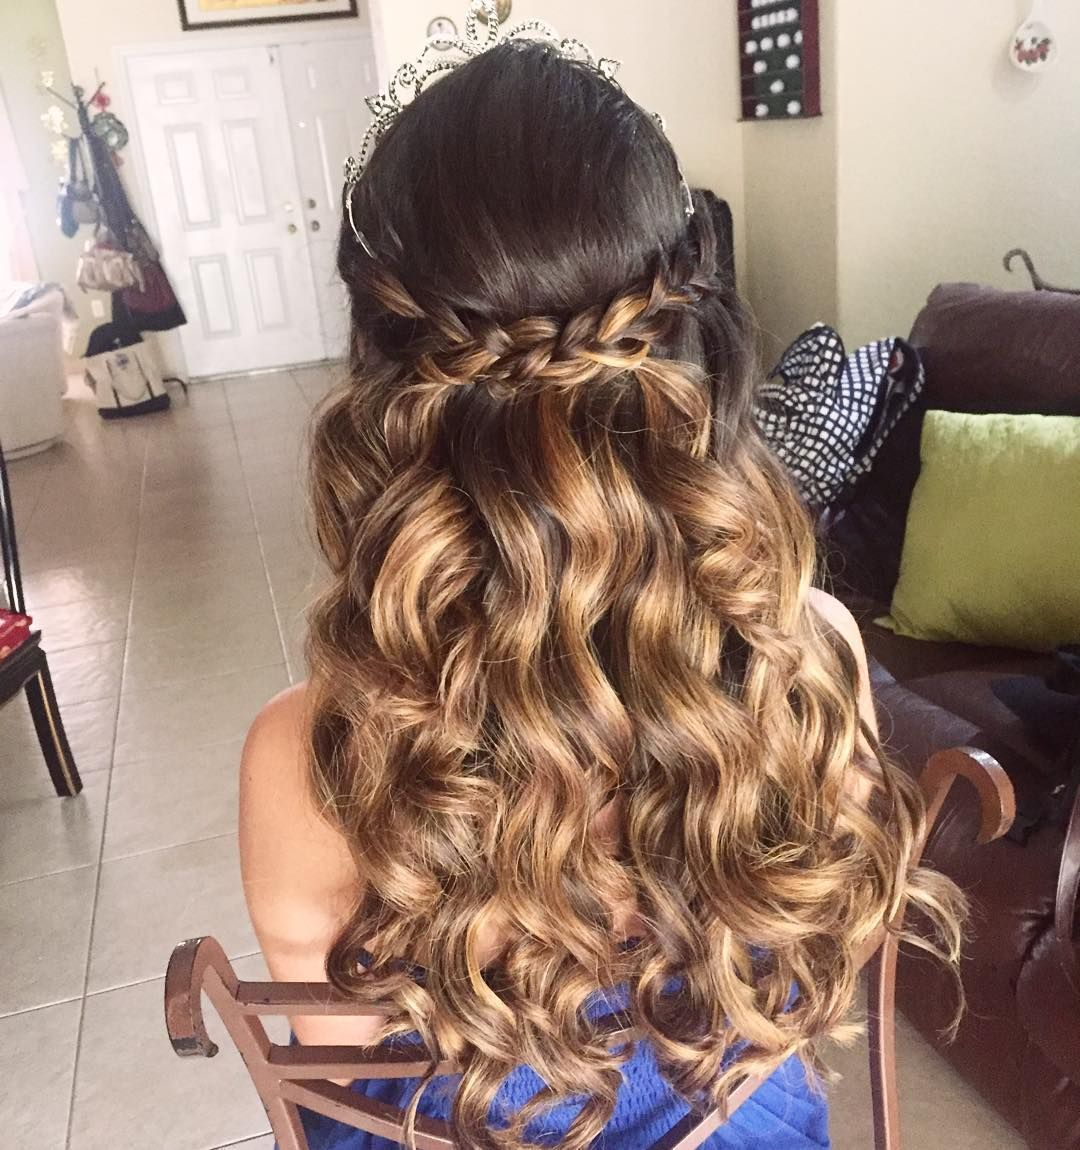 Hairstyles for long hair quinceanera hairstyles for long hair